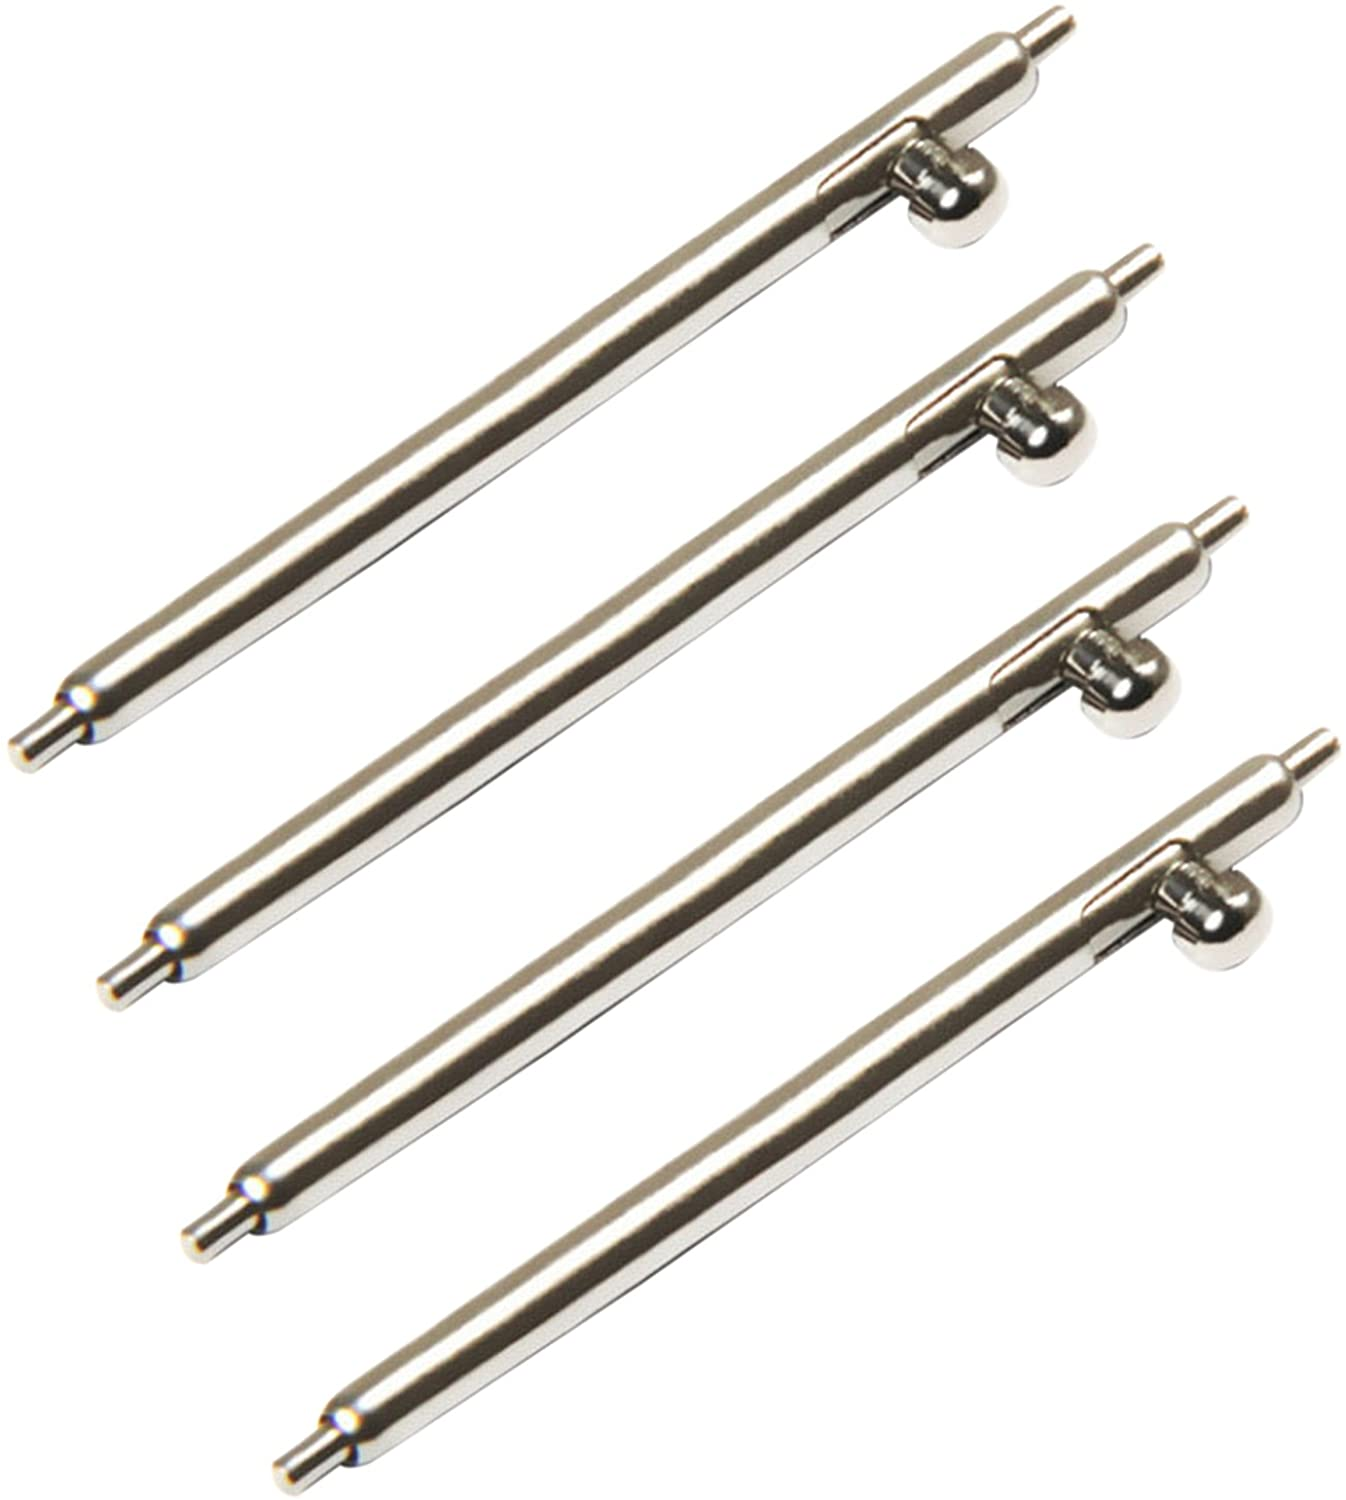 14-24mmx1.5mm High-end Stainless Steel Quick Release Spring Bars with Lever for Watch Band(4 Pieces pins)